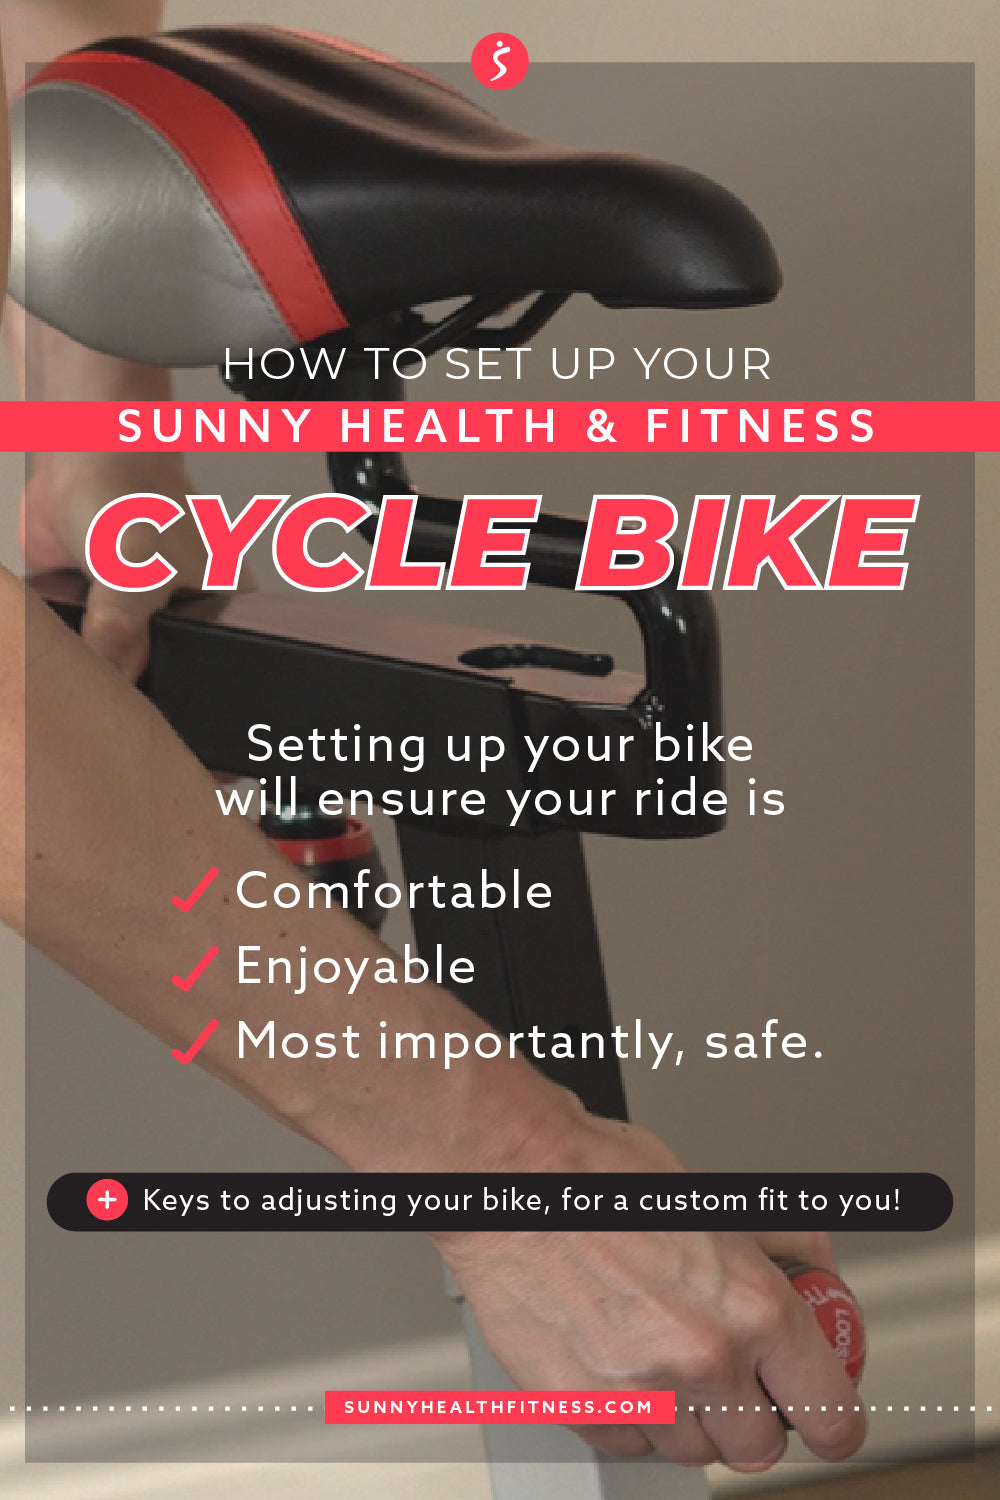 How to Set Up Your Sunny Health & Fitness Cycle Bike Infographic